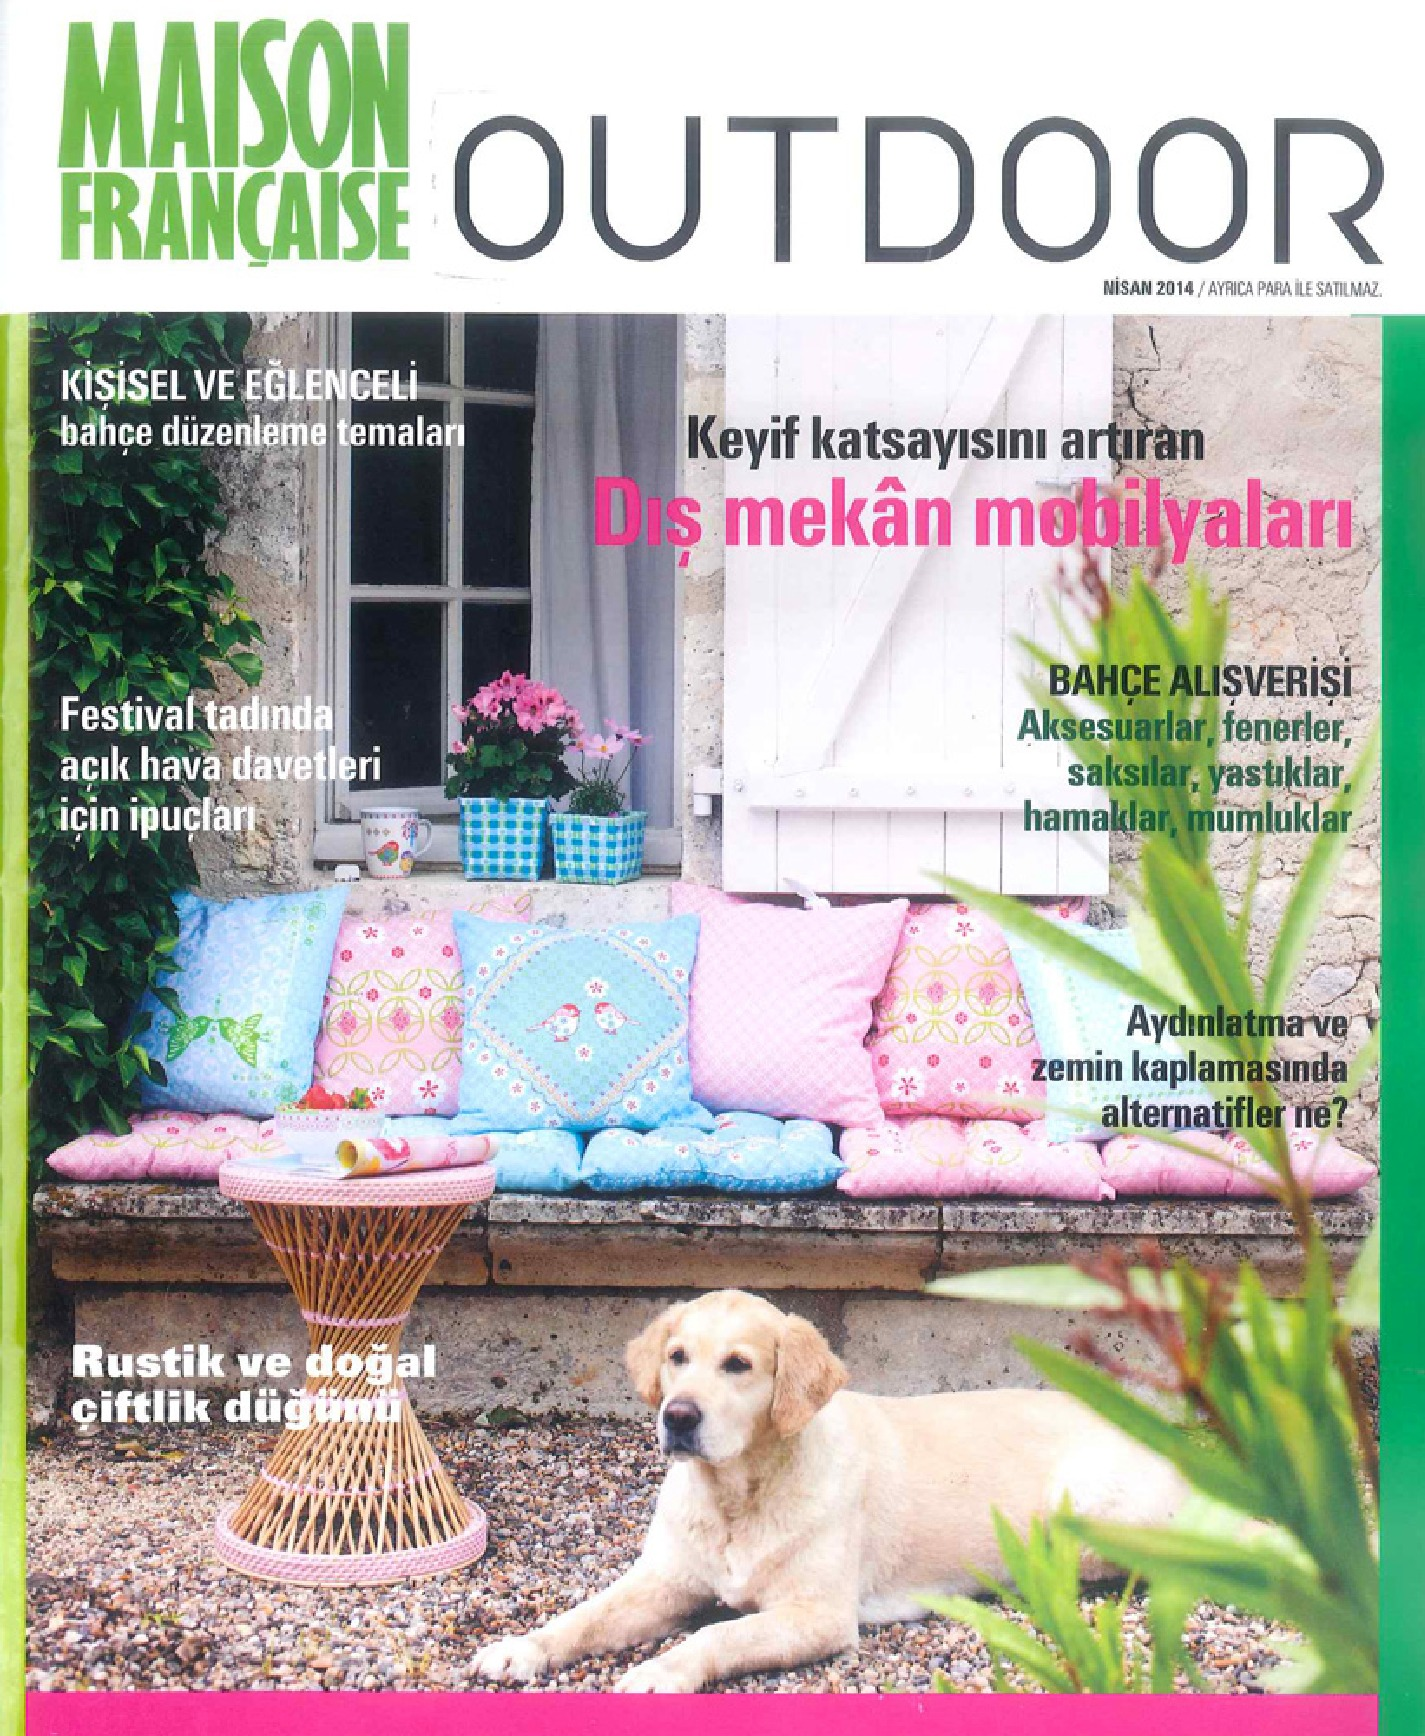 TURCHIA-MAISON-FRANCAISE-OUTDOOR-SPECIAL-ISSUE-APRIL-2014_2-0